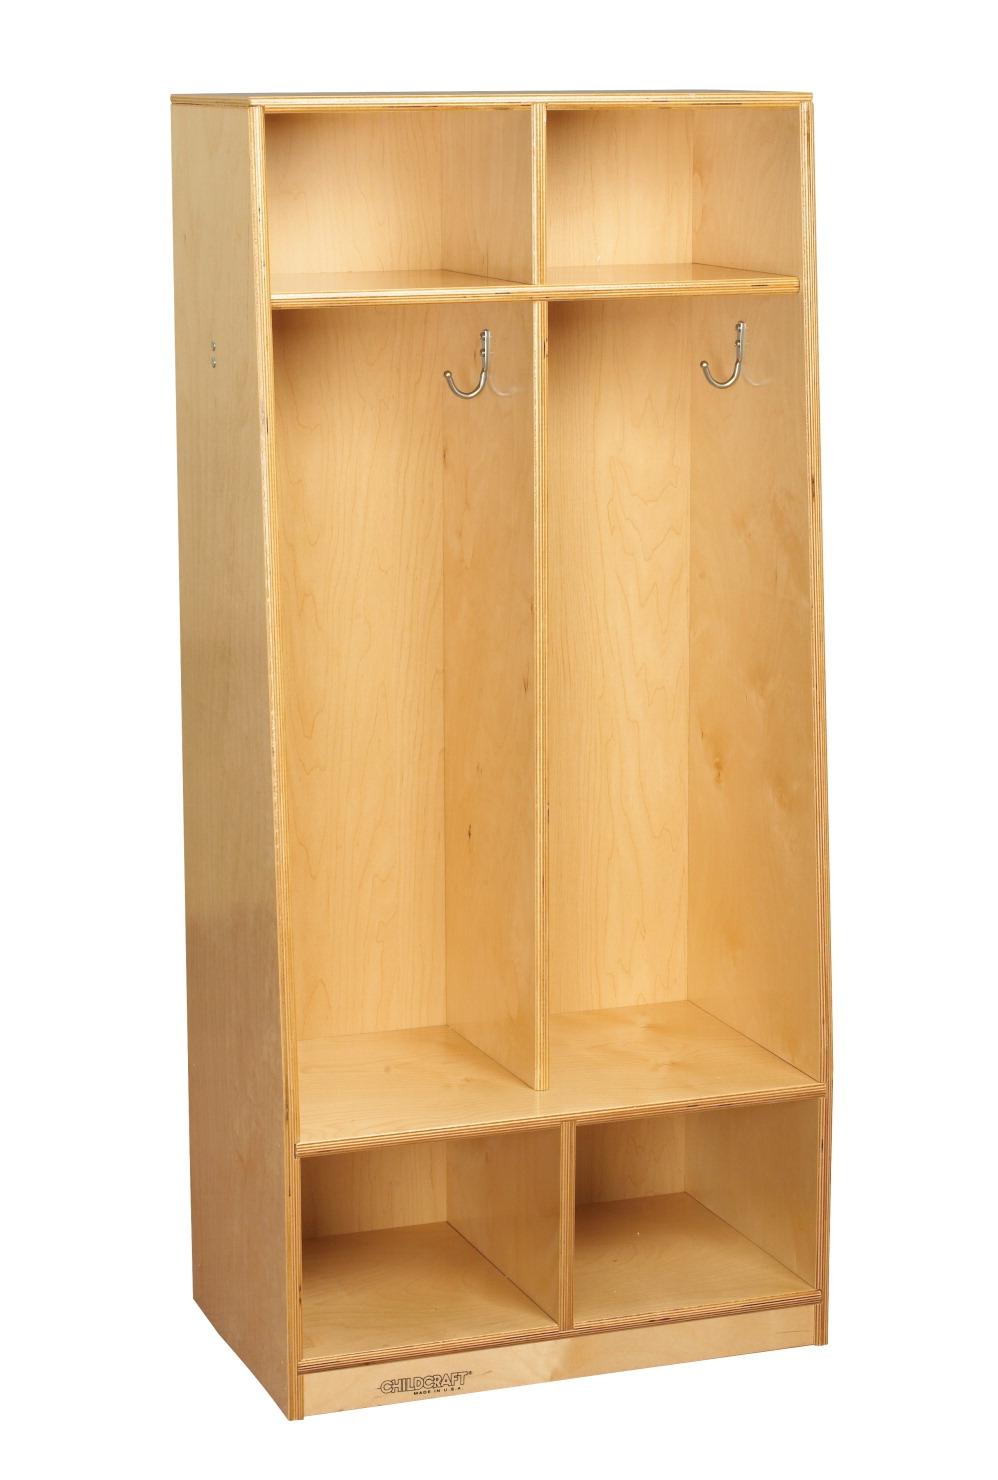 Facilities Management Lockers Standard Wide Lockers - 1301428 - Childcraft 2-section Assembled Bench Coat Locker; 21-7/8 X 13-3/4 X 48 Inches 1301428